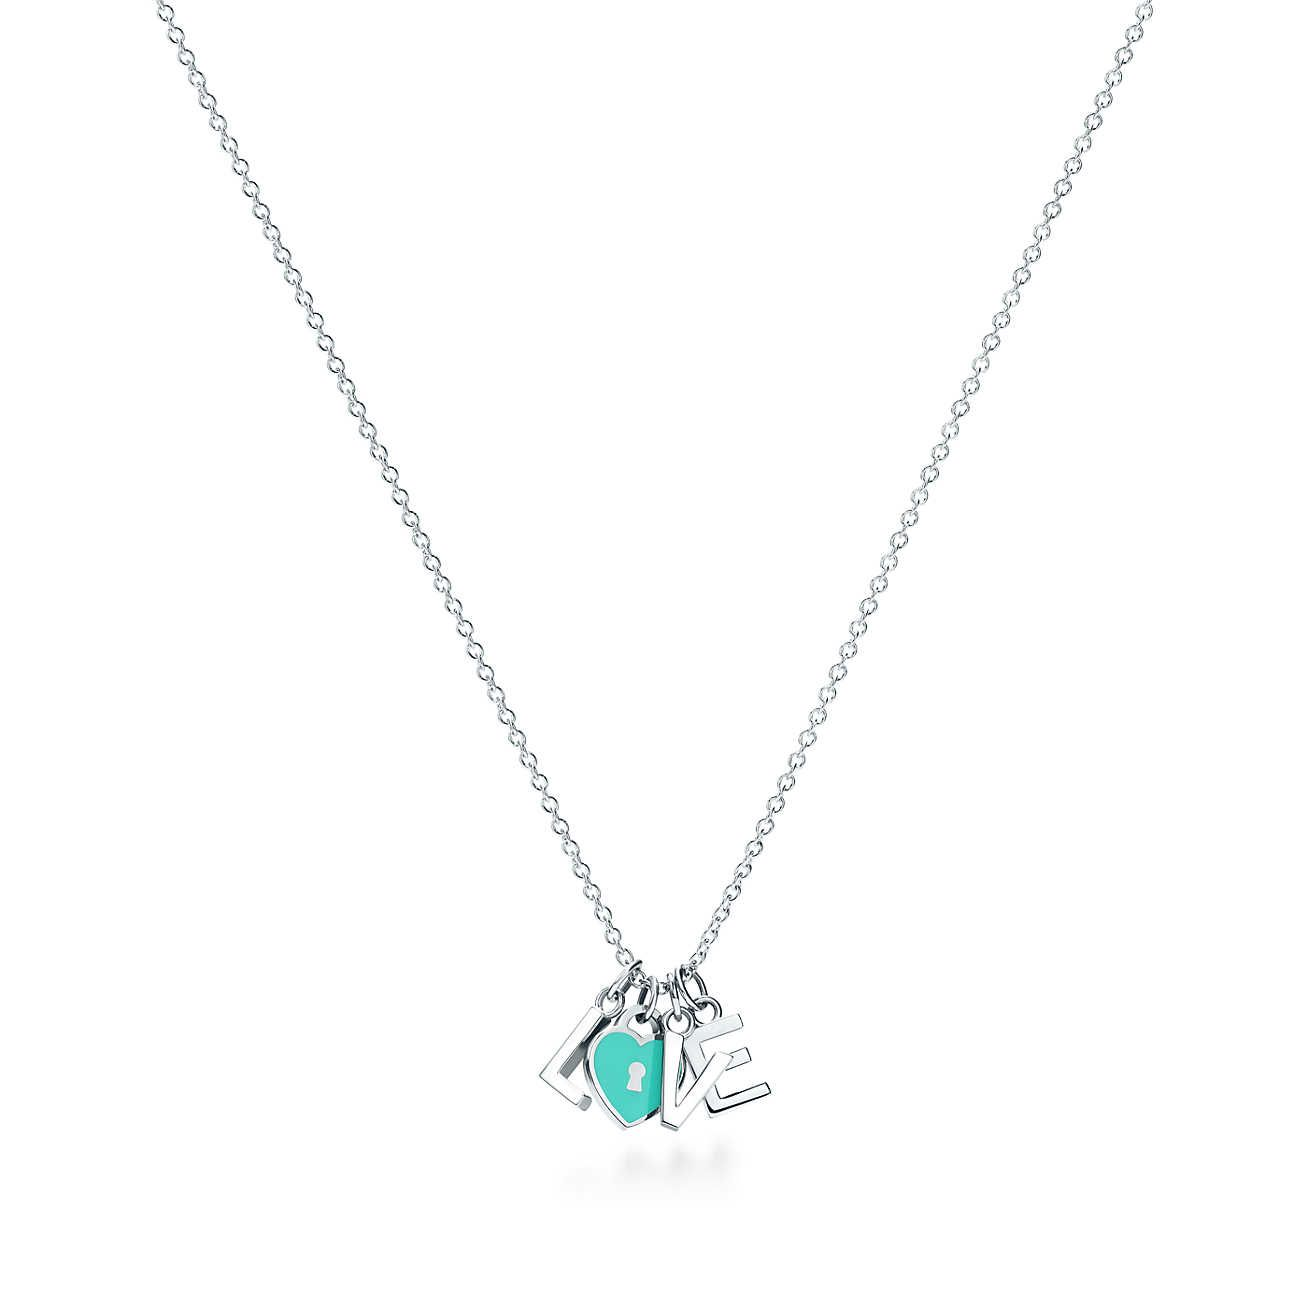 8a63fc29c Tiffany Charms:Love Notes